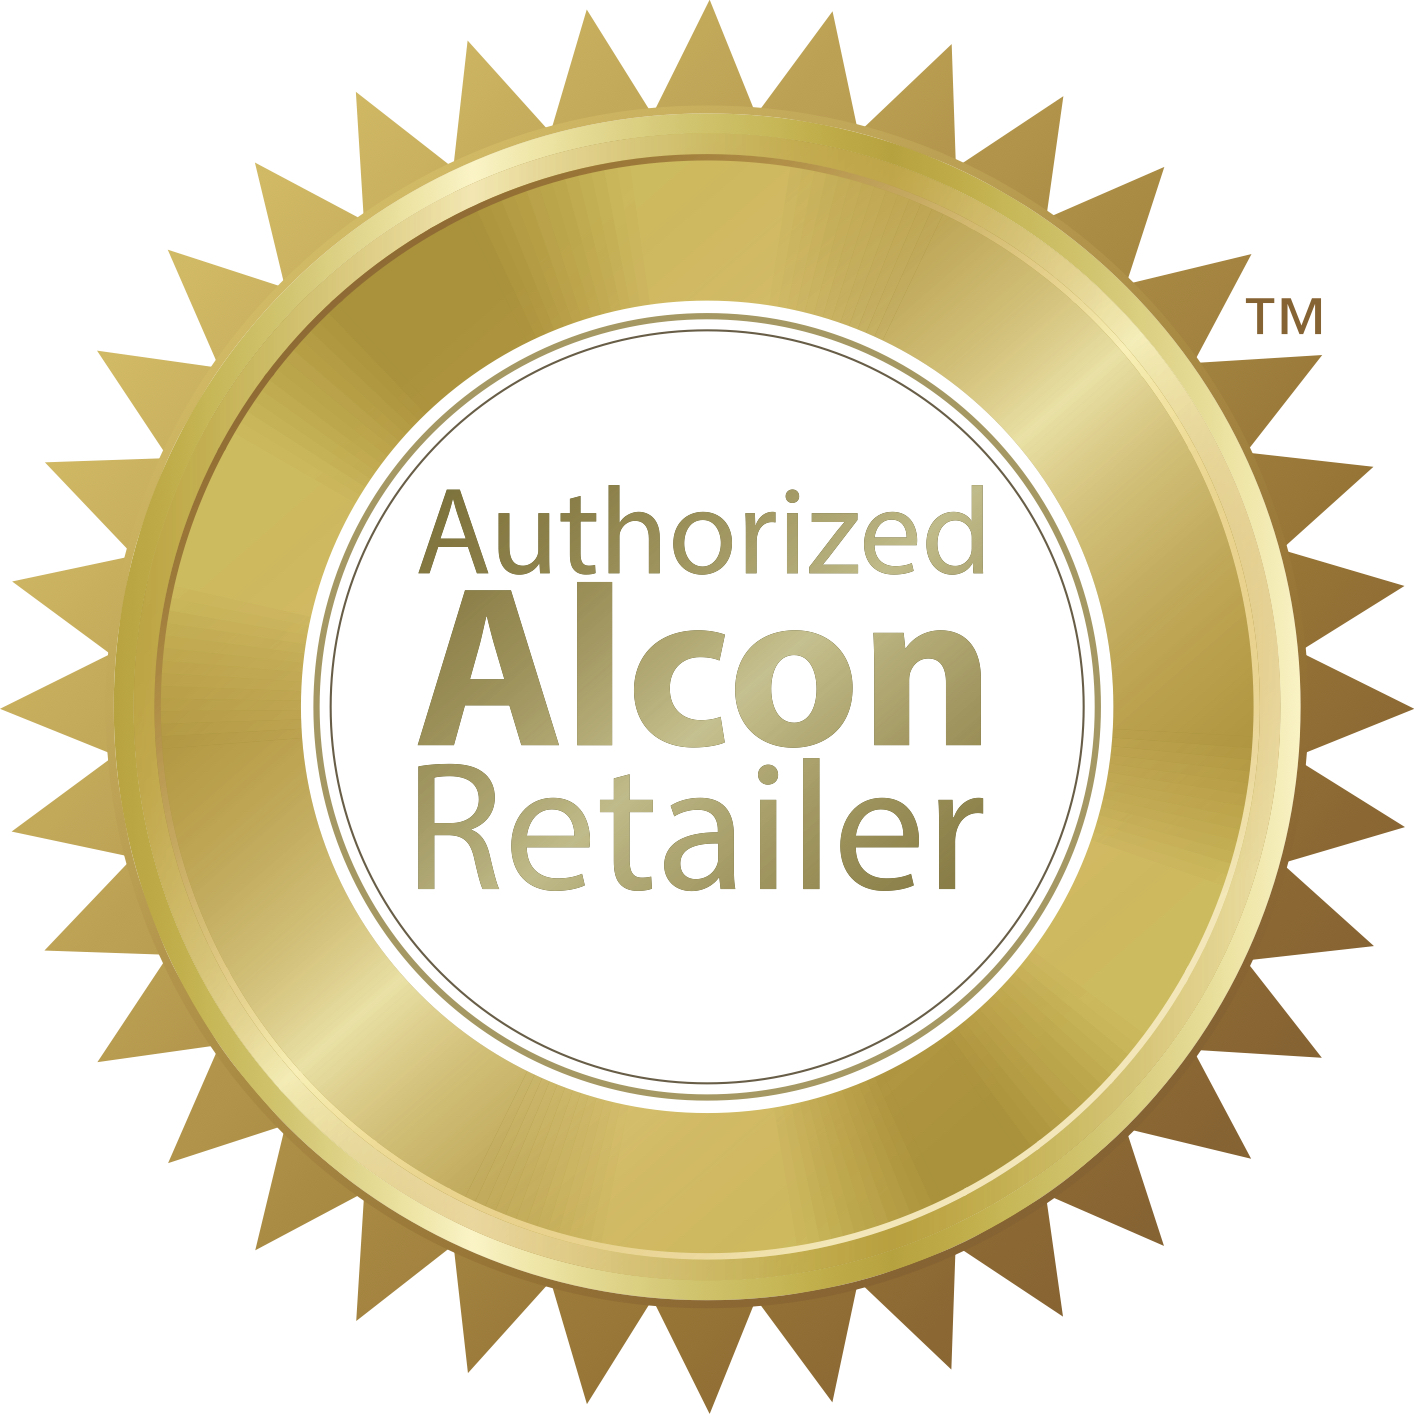 Alcon Authorized Retailer